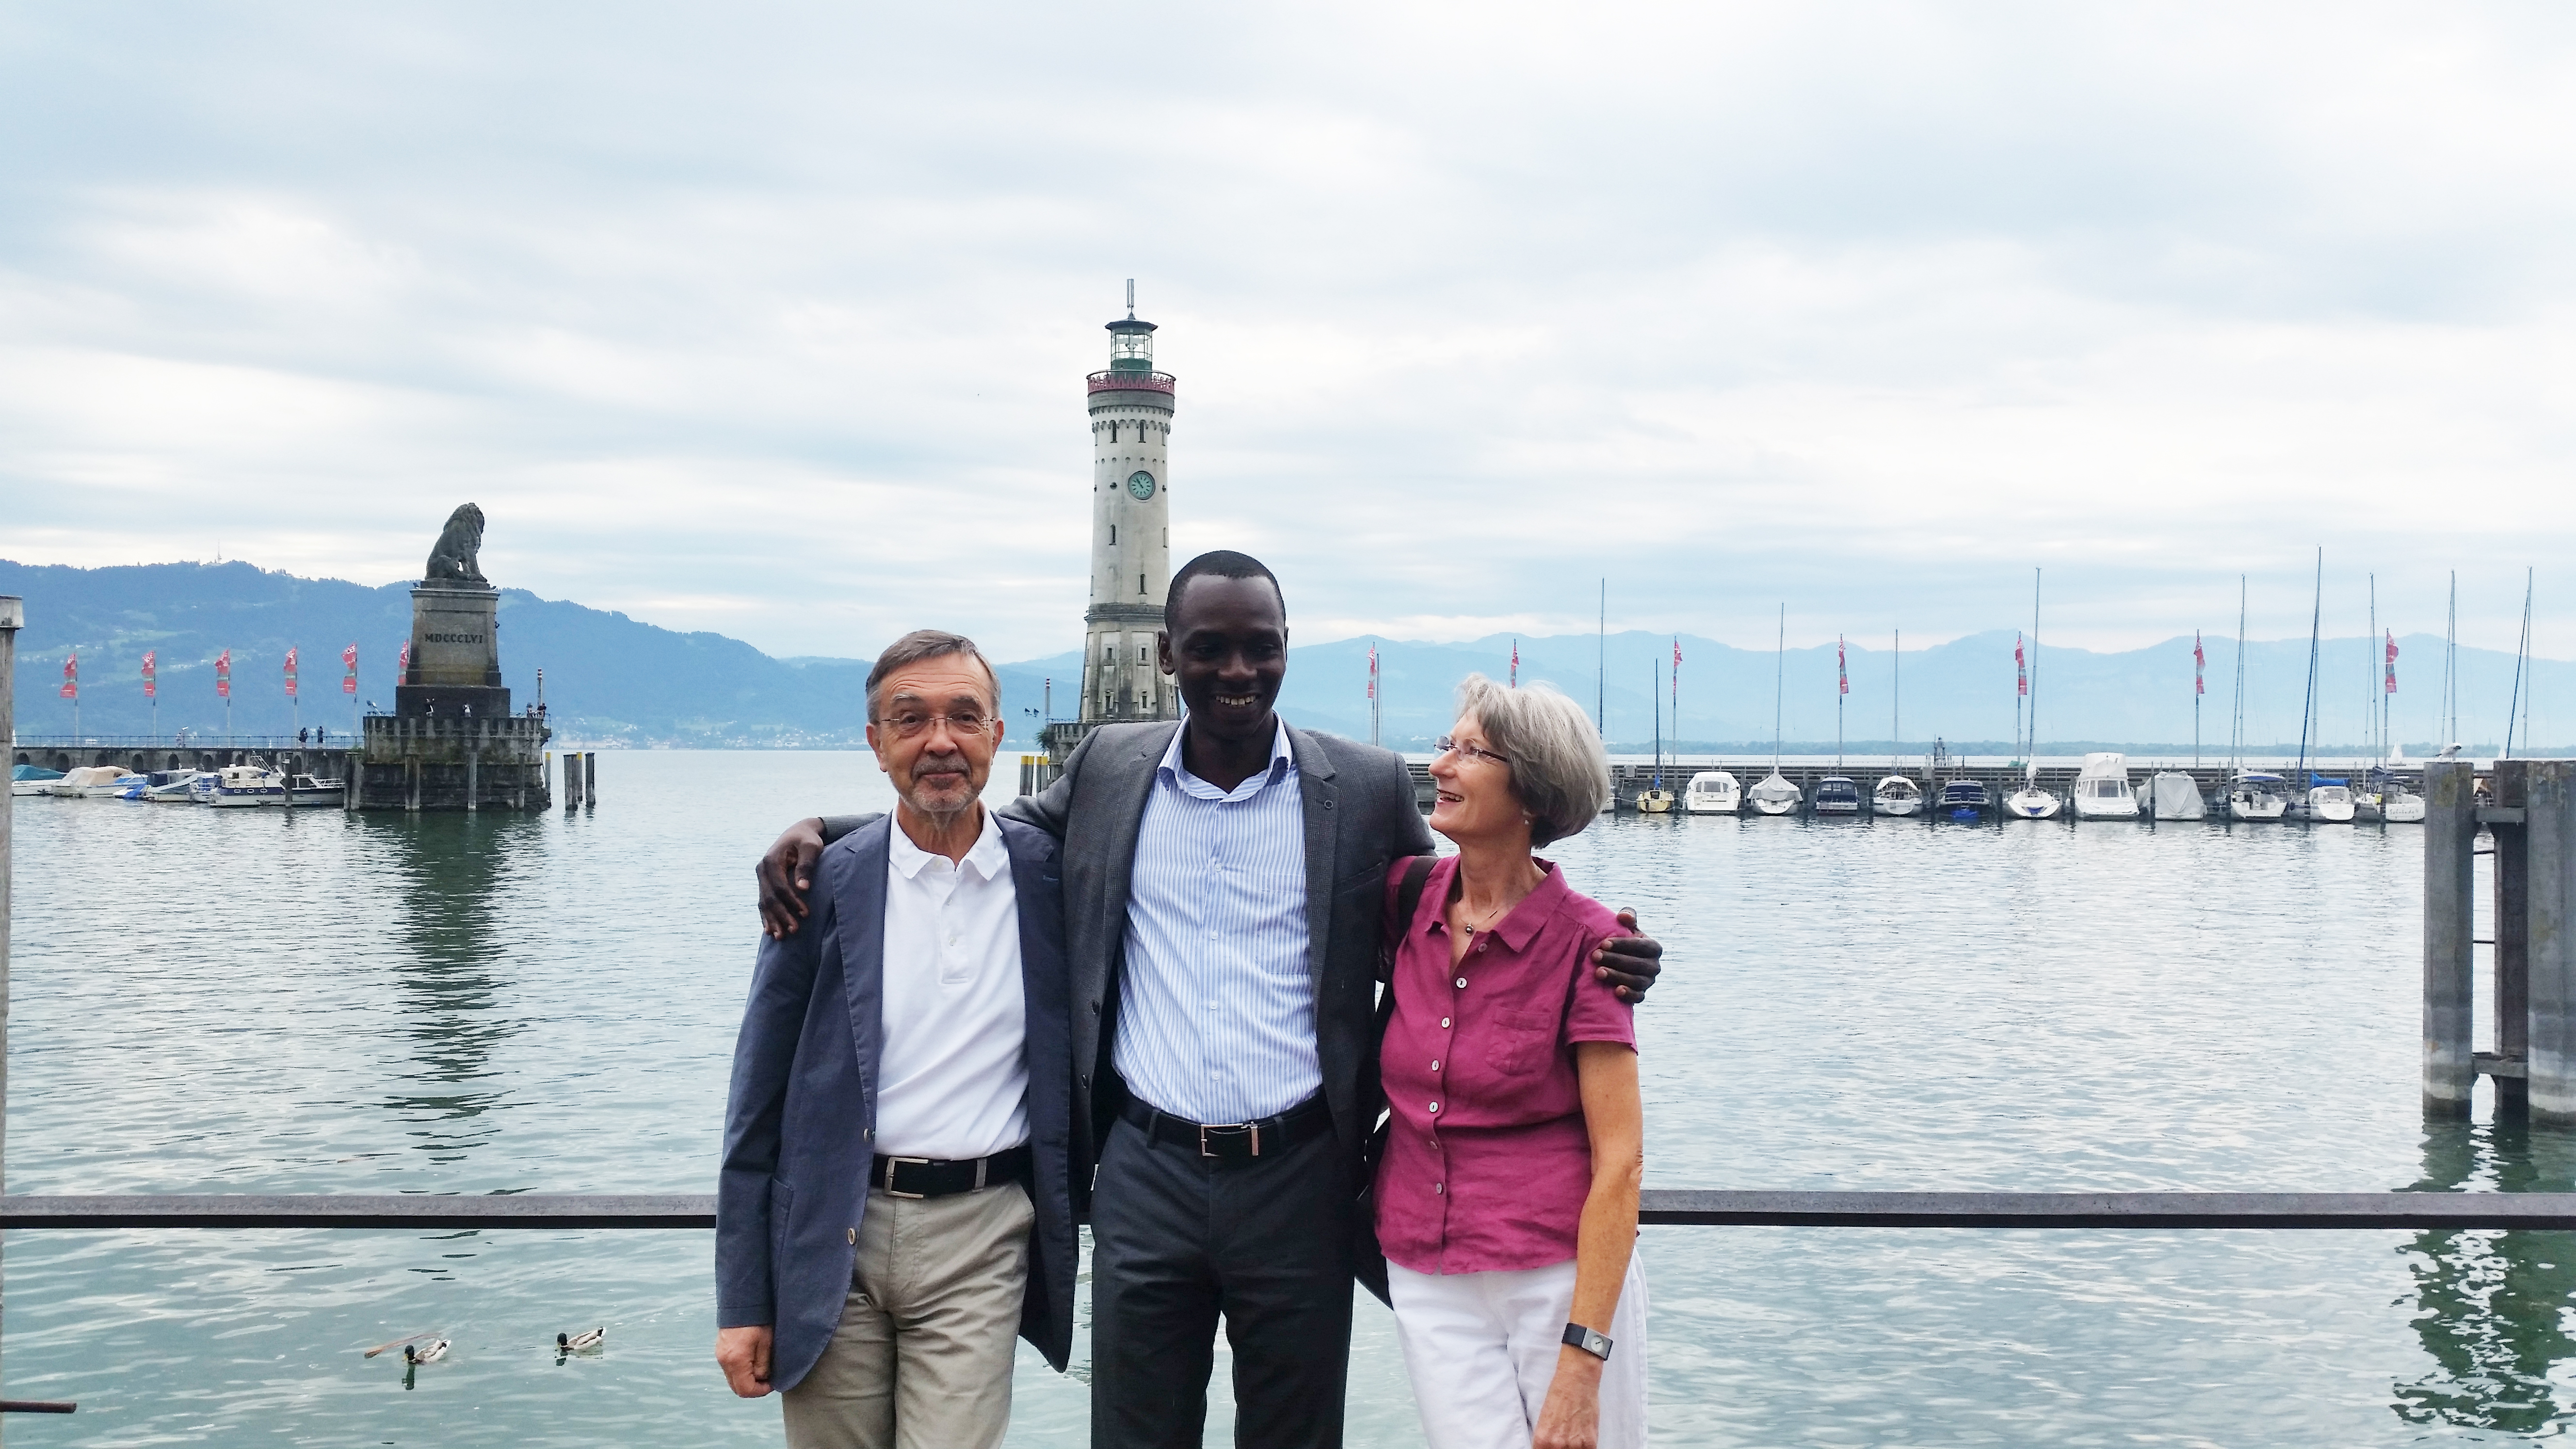 Elom Algago and his host family in Lindau. Credit: Christoph Schumacher/Lindau Nobel Laureate Meetings